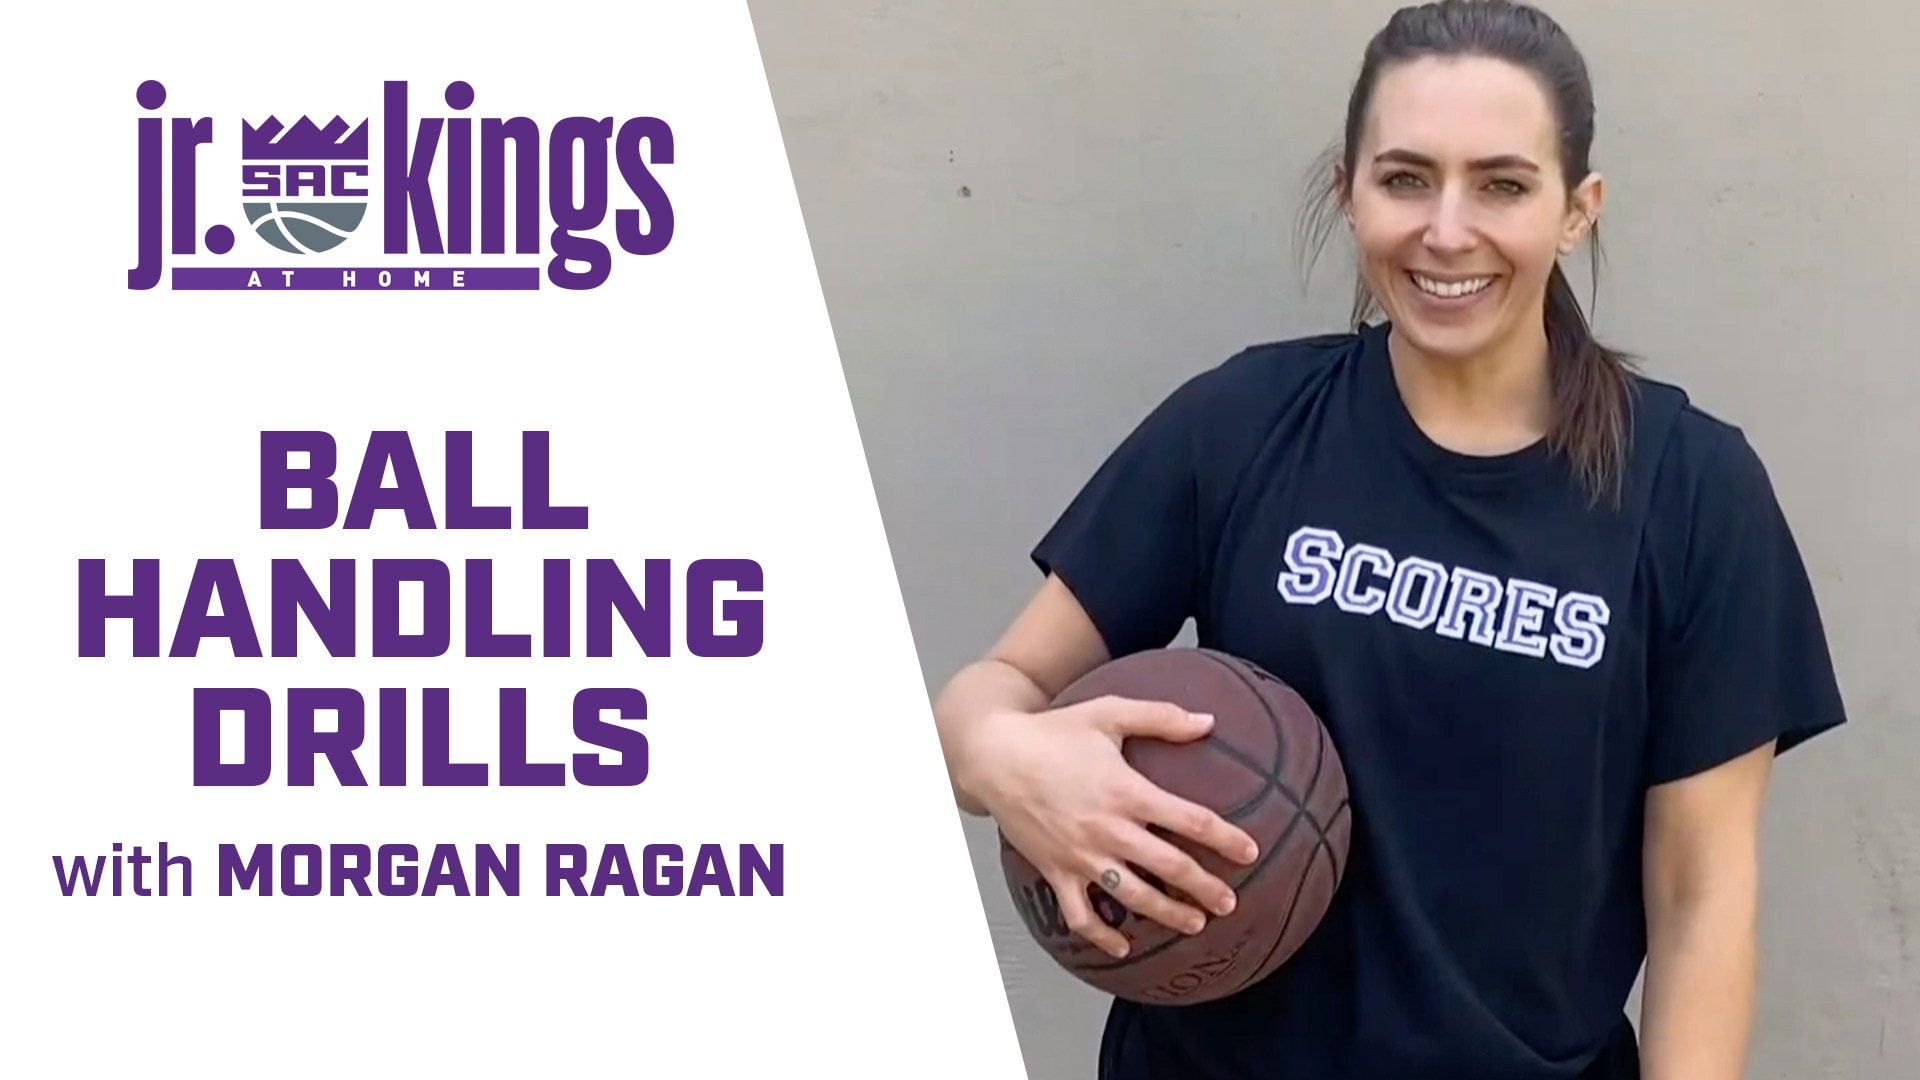 Jr. Kings at Home | Ball Handling Drills with Morgan Ragan